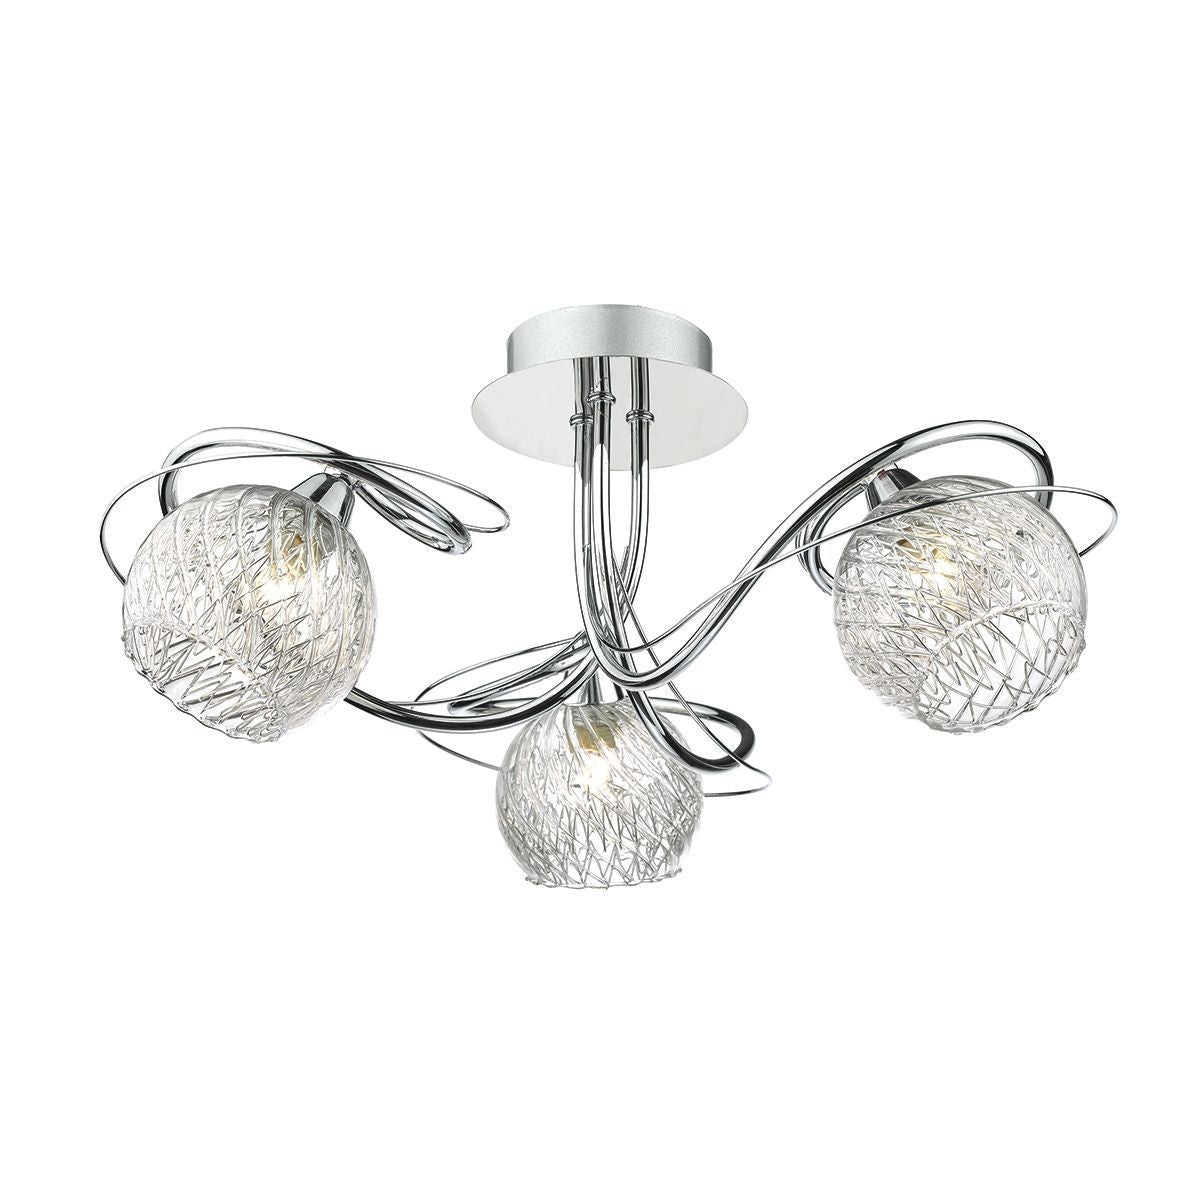 3 Light Semi Flush Ceiling Light With Decorative Wire Effect Glass - ID 8454